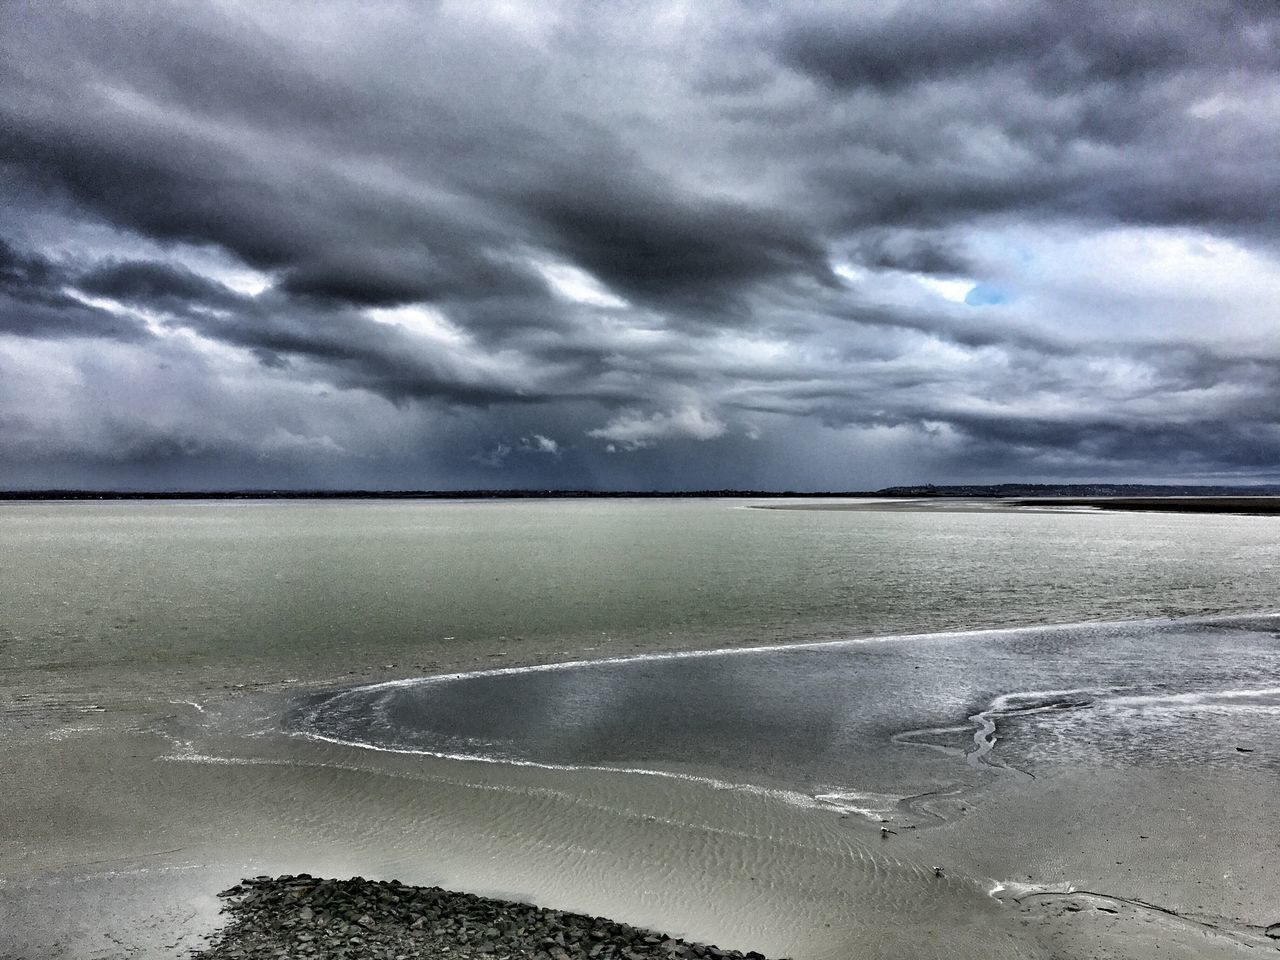 Water Nature Cloud - Sky Sea Beauty In Nature Scenics Storm Cloud Popular Photos Sky Weather No People Bretagnetourisme Bretagne Mont Saint-Michel Bay Rainy Days Mont Saint-Michel Tranquility Tranquil Scene Outdoors Beach Storm Dramatic Sky Horizon Over Water Thunderstorm Day